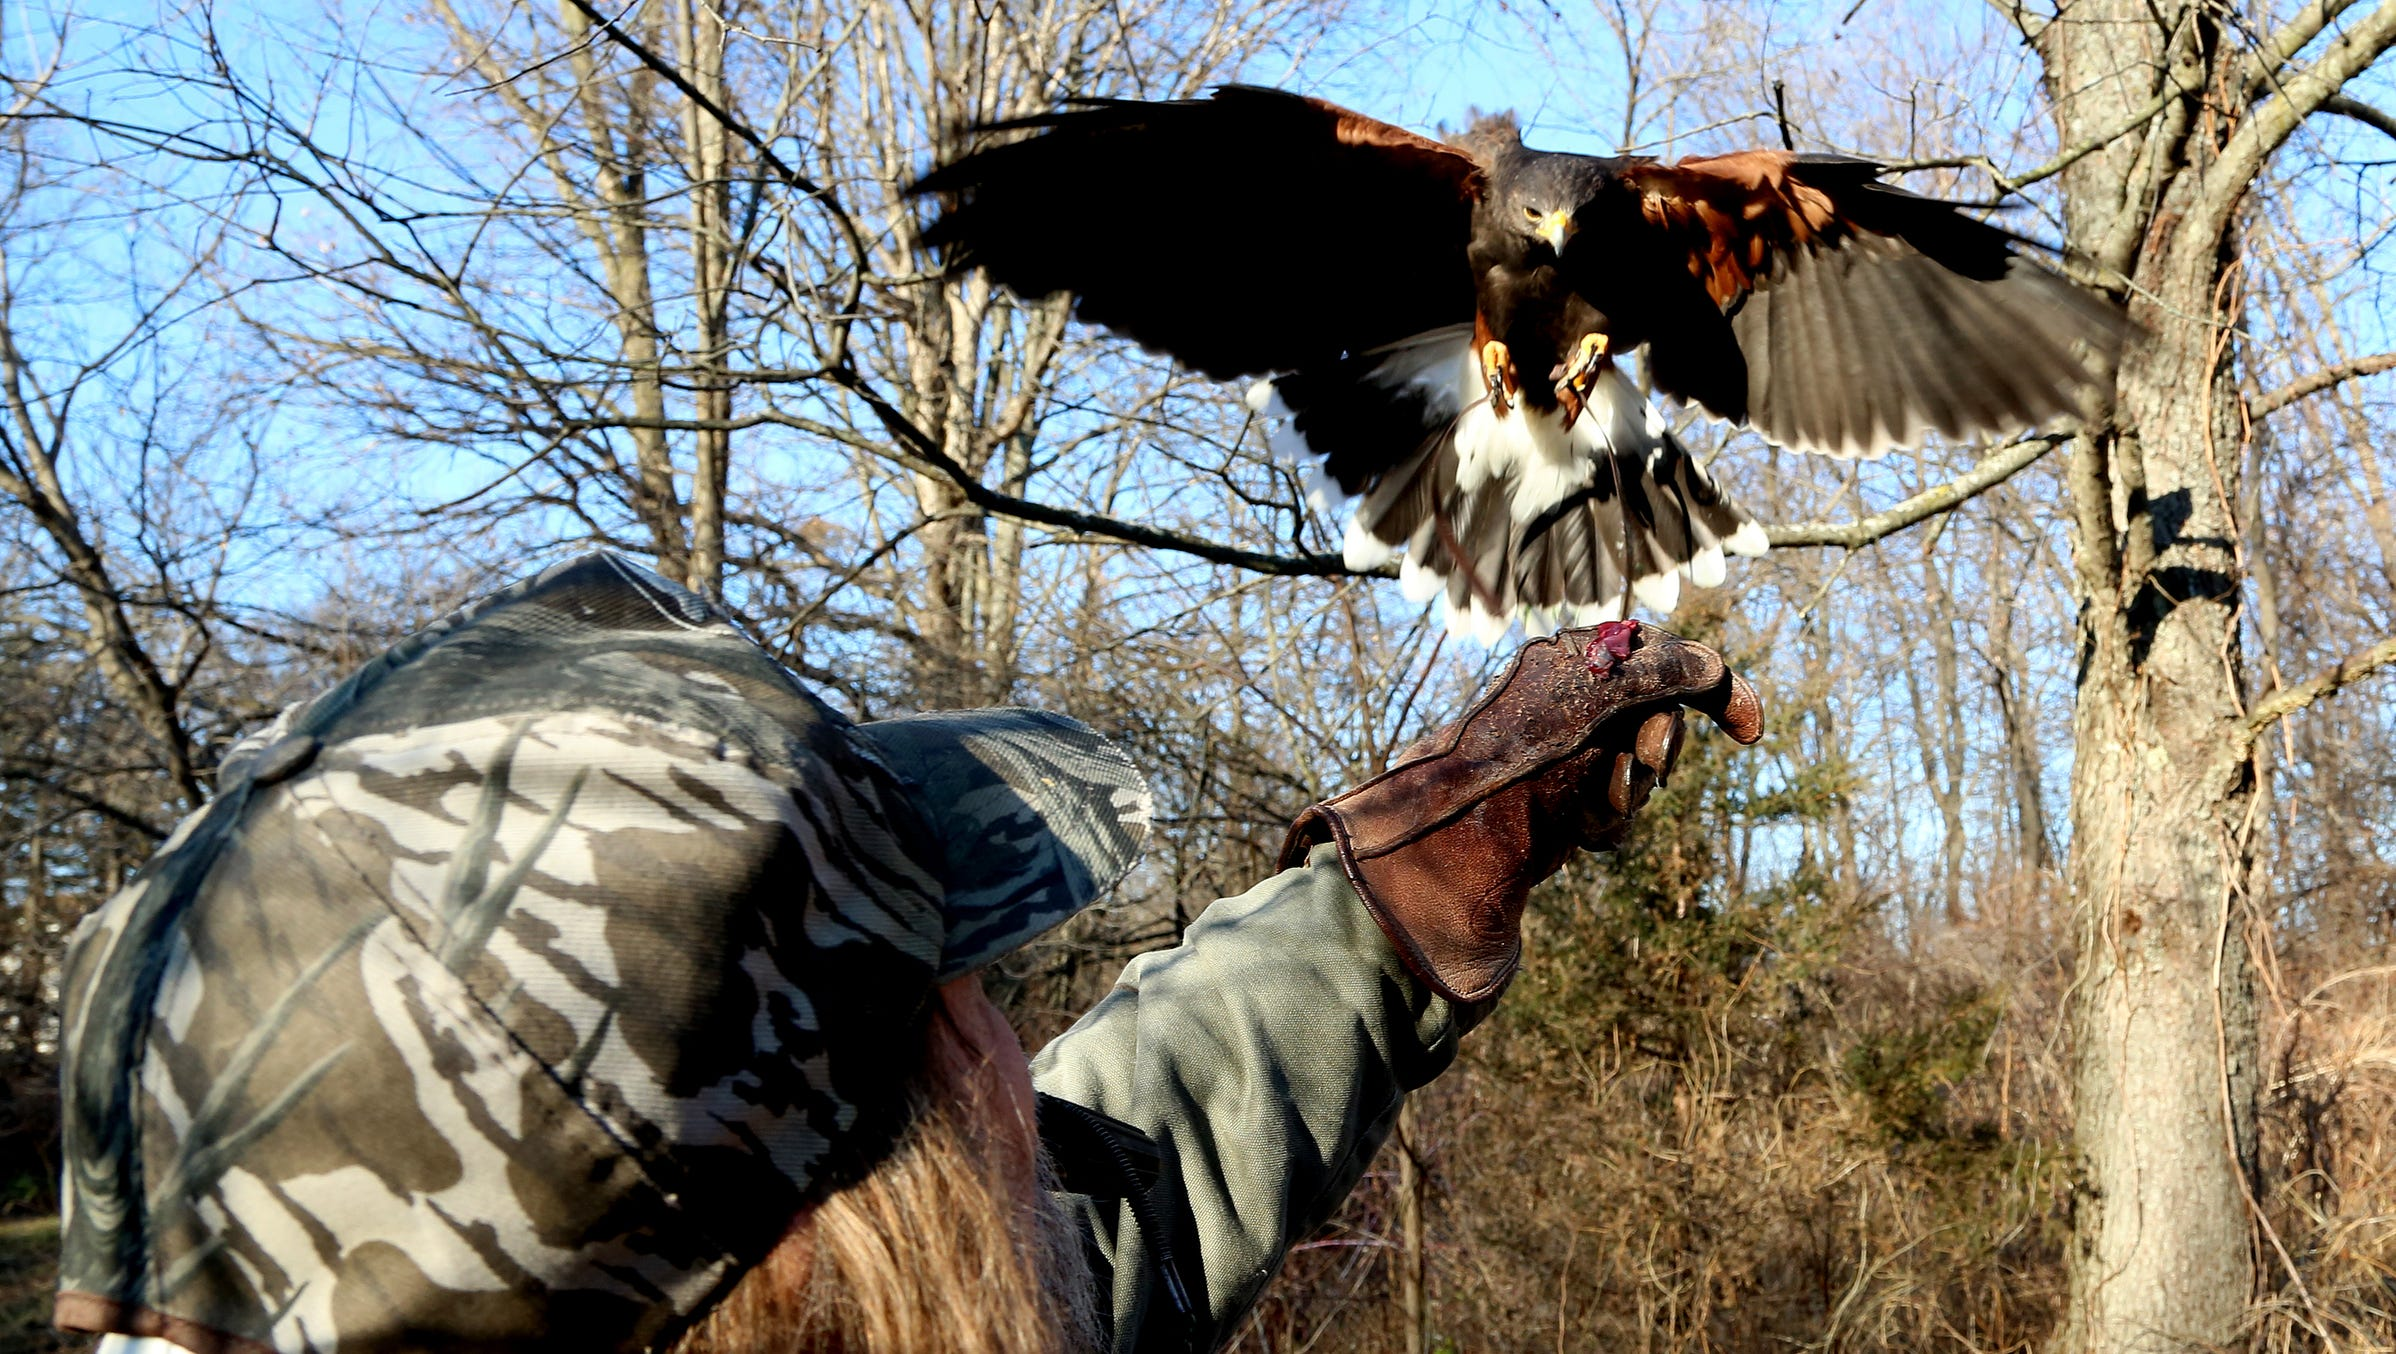 Exclusive Group Has Permits To Hunt With Birds Of Prey